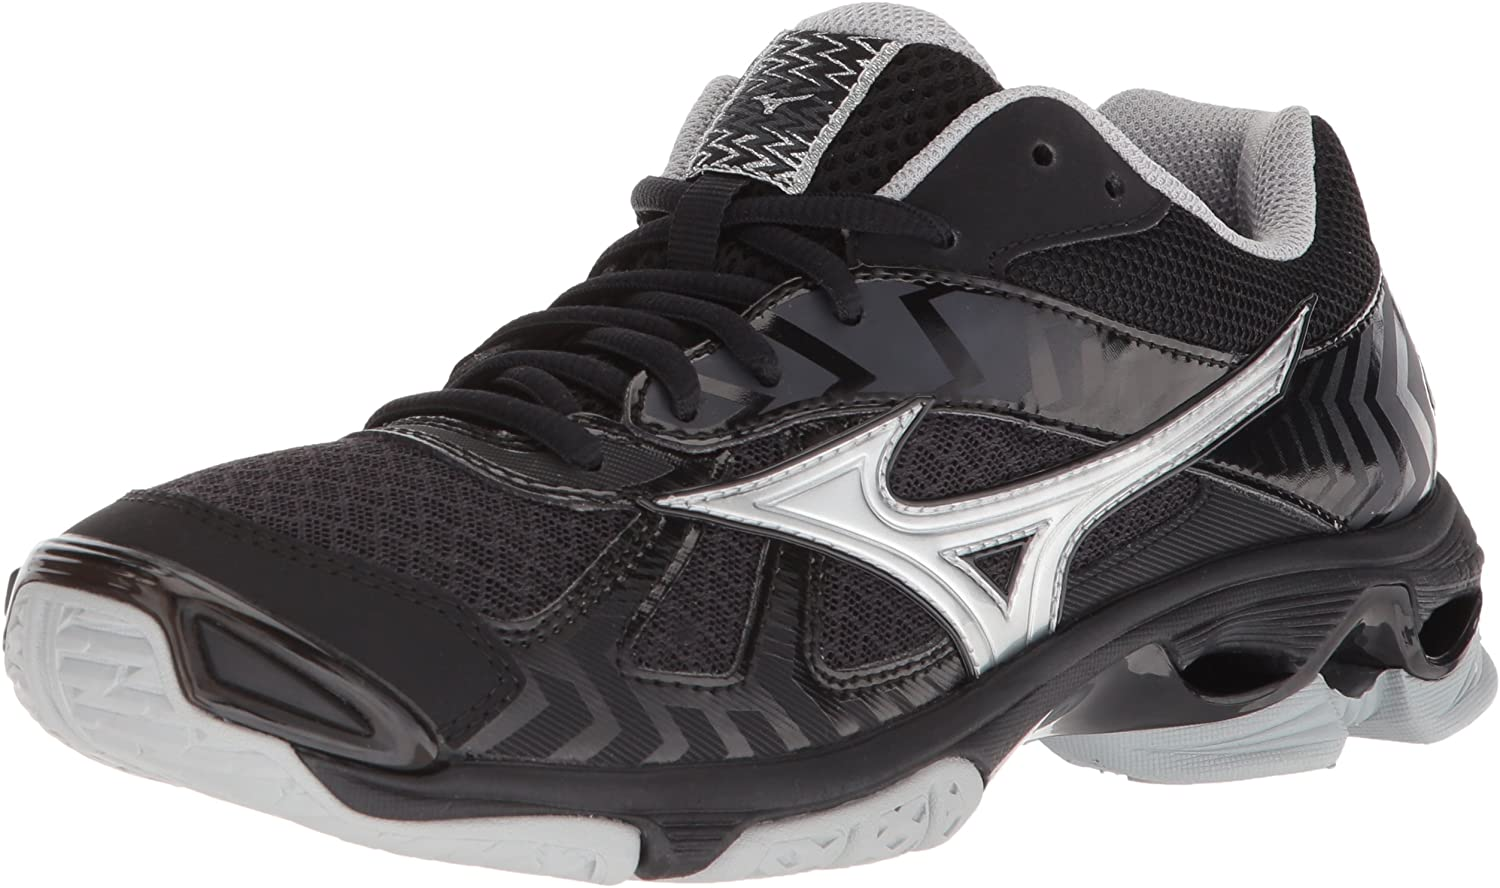 Mizuno Women's Wave Bolt 7 Volleyball Shoes Footwear: Sports & Outdoors